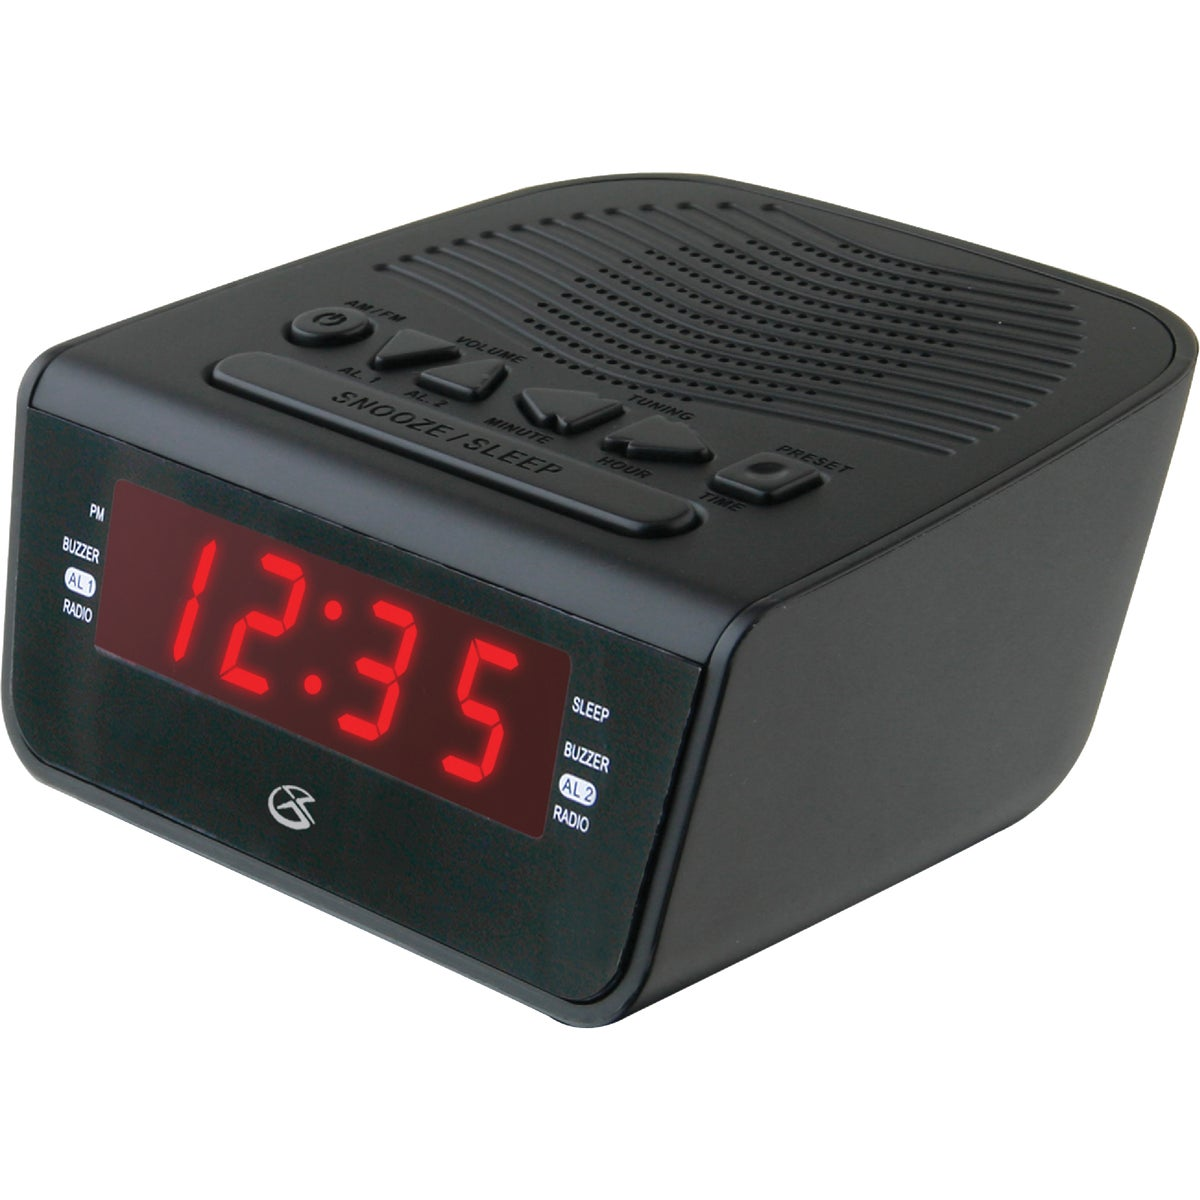 DUAL ALARM CLOCK RADIO - C222B by Dpi Inc